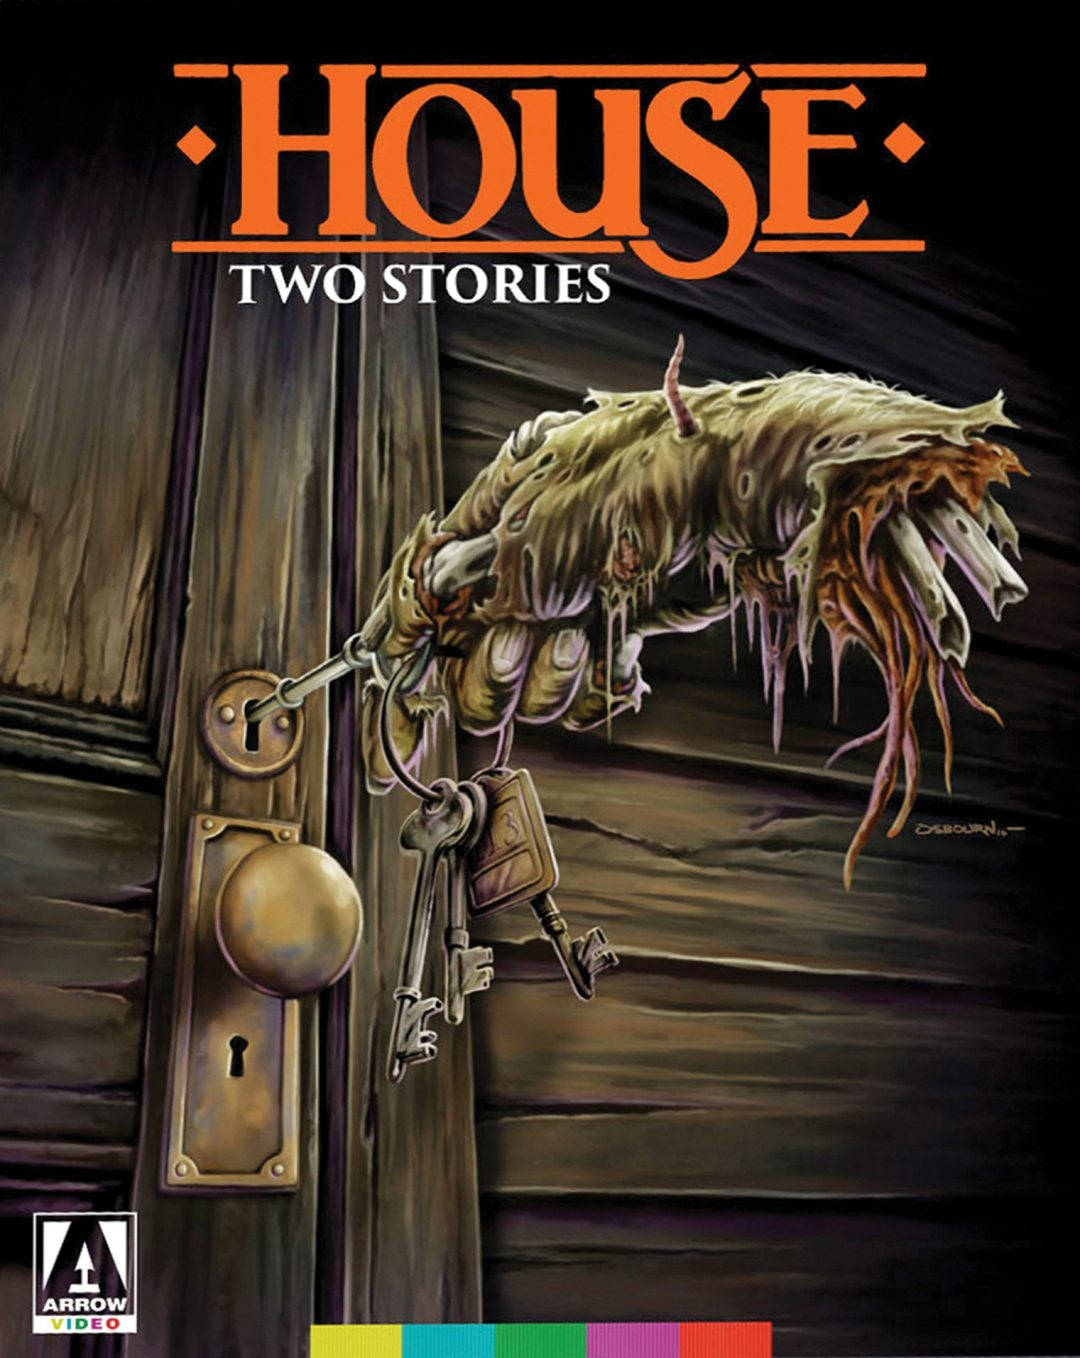 House: Two Stories Limited Edition – Blu-ray Release